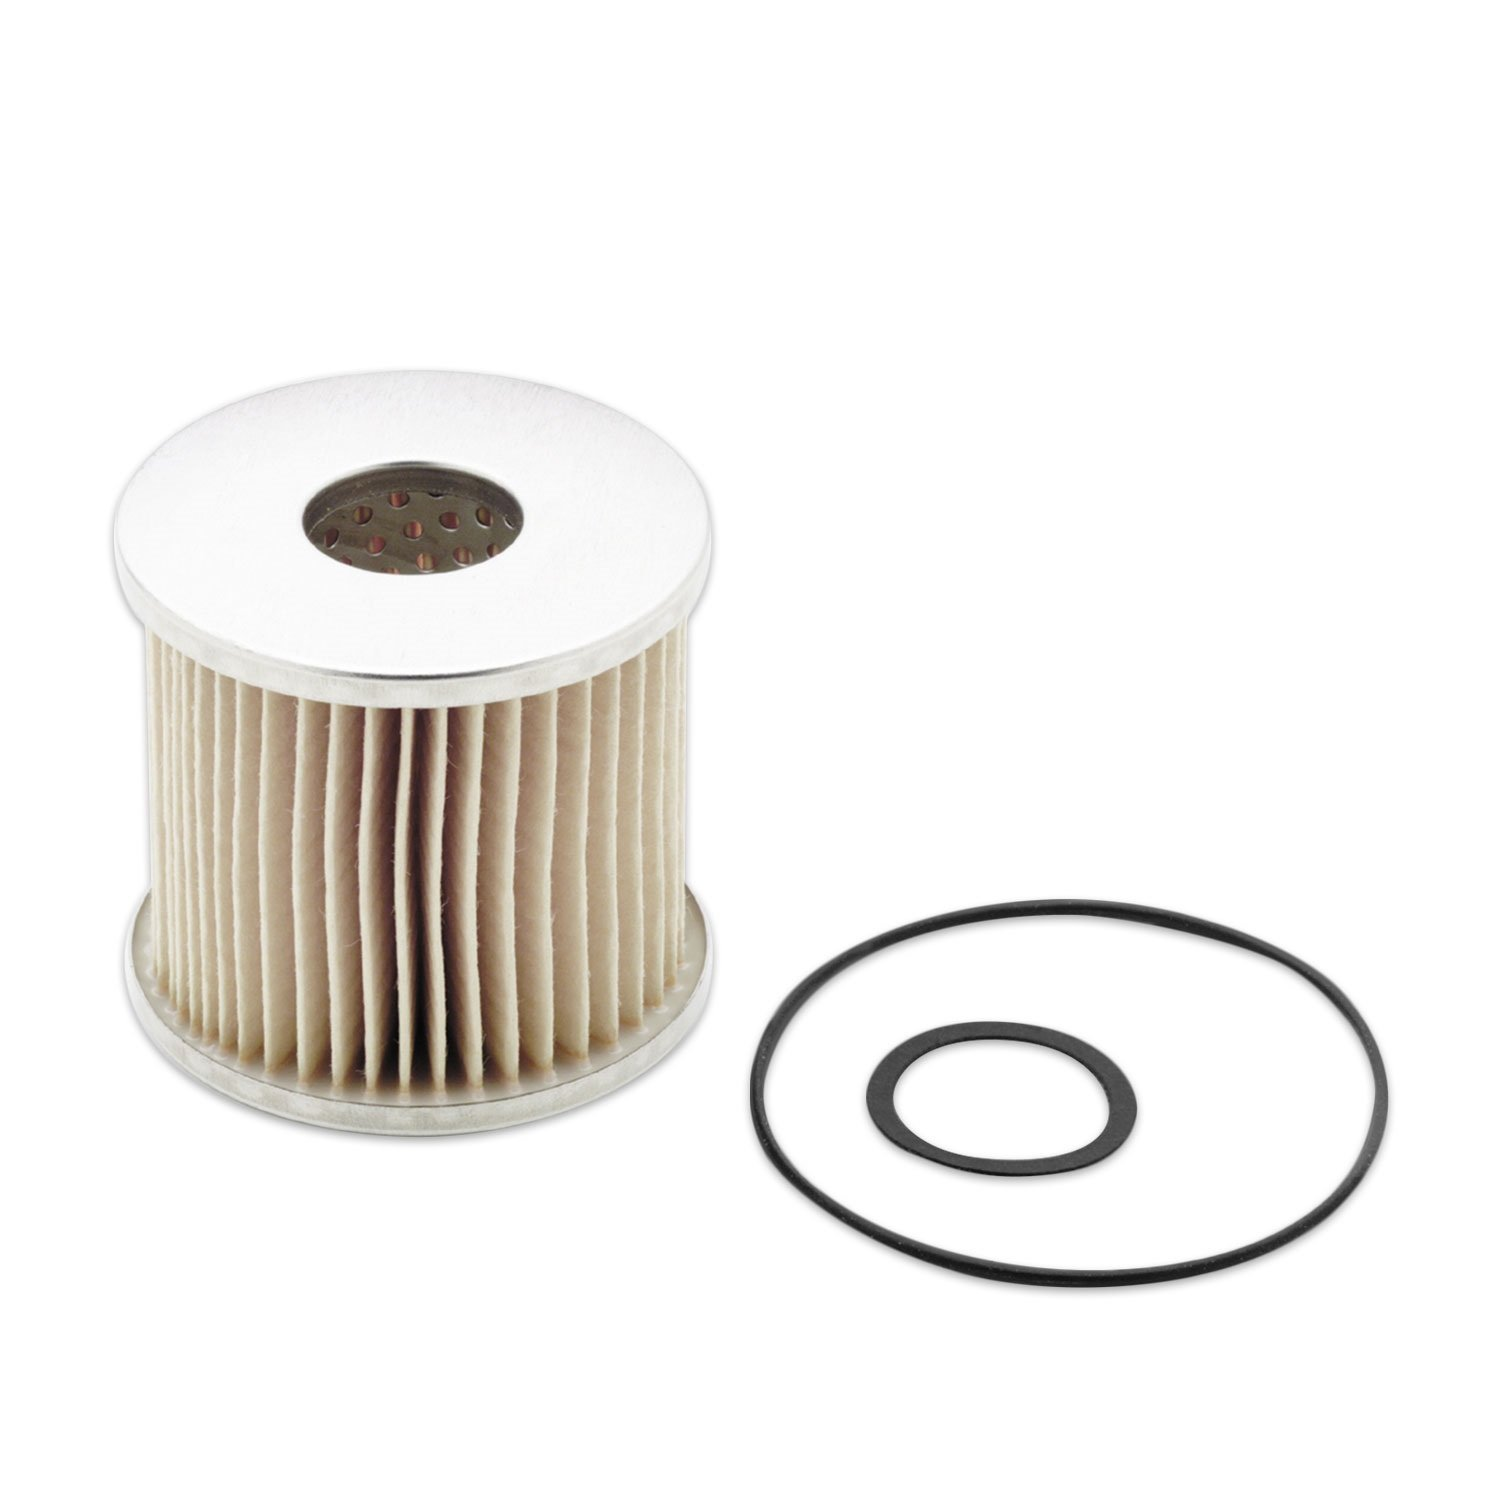 Mallory 29239 Fuel Filter (Gas,Paper, 40 Micron) on